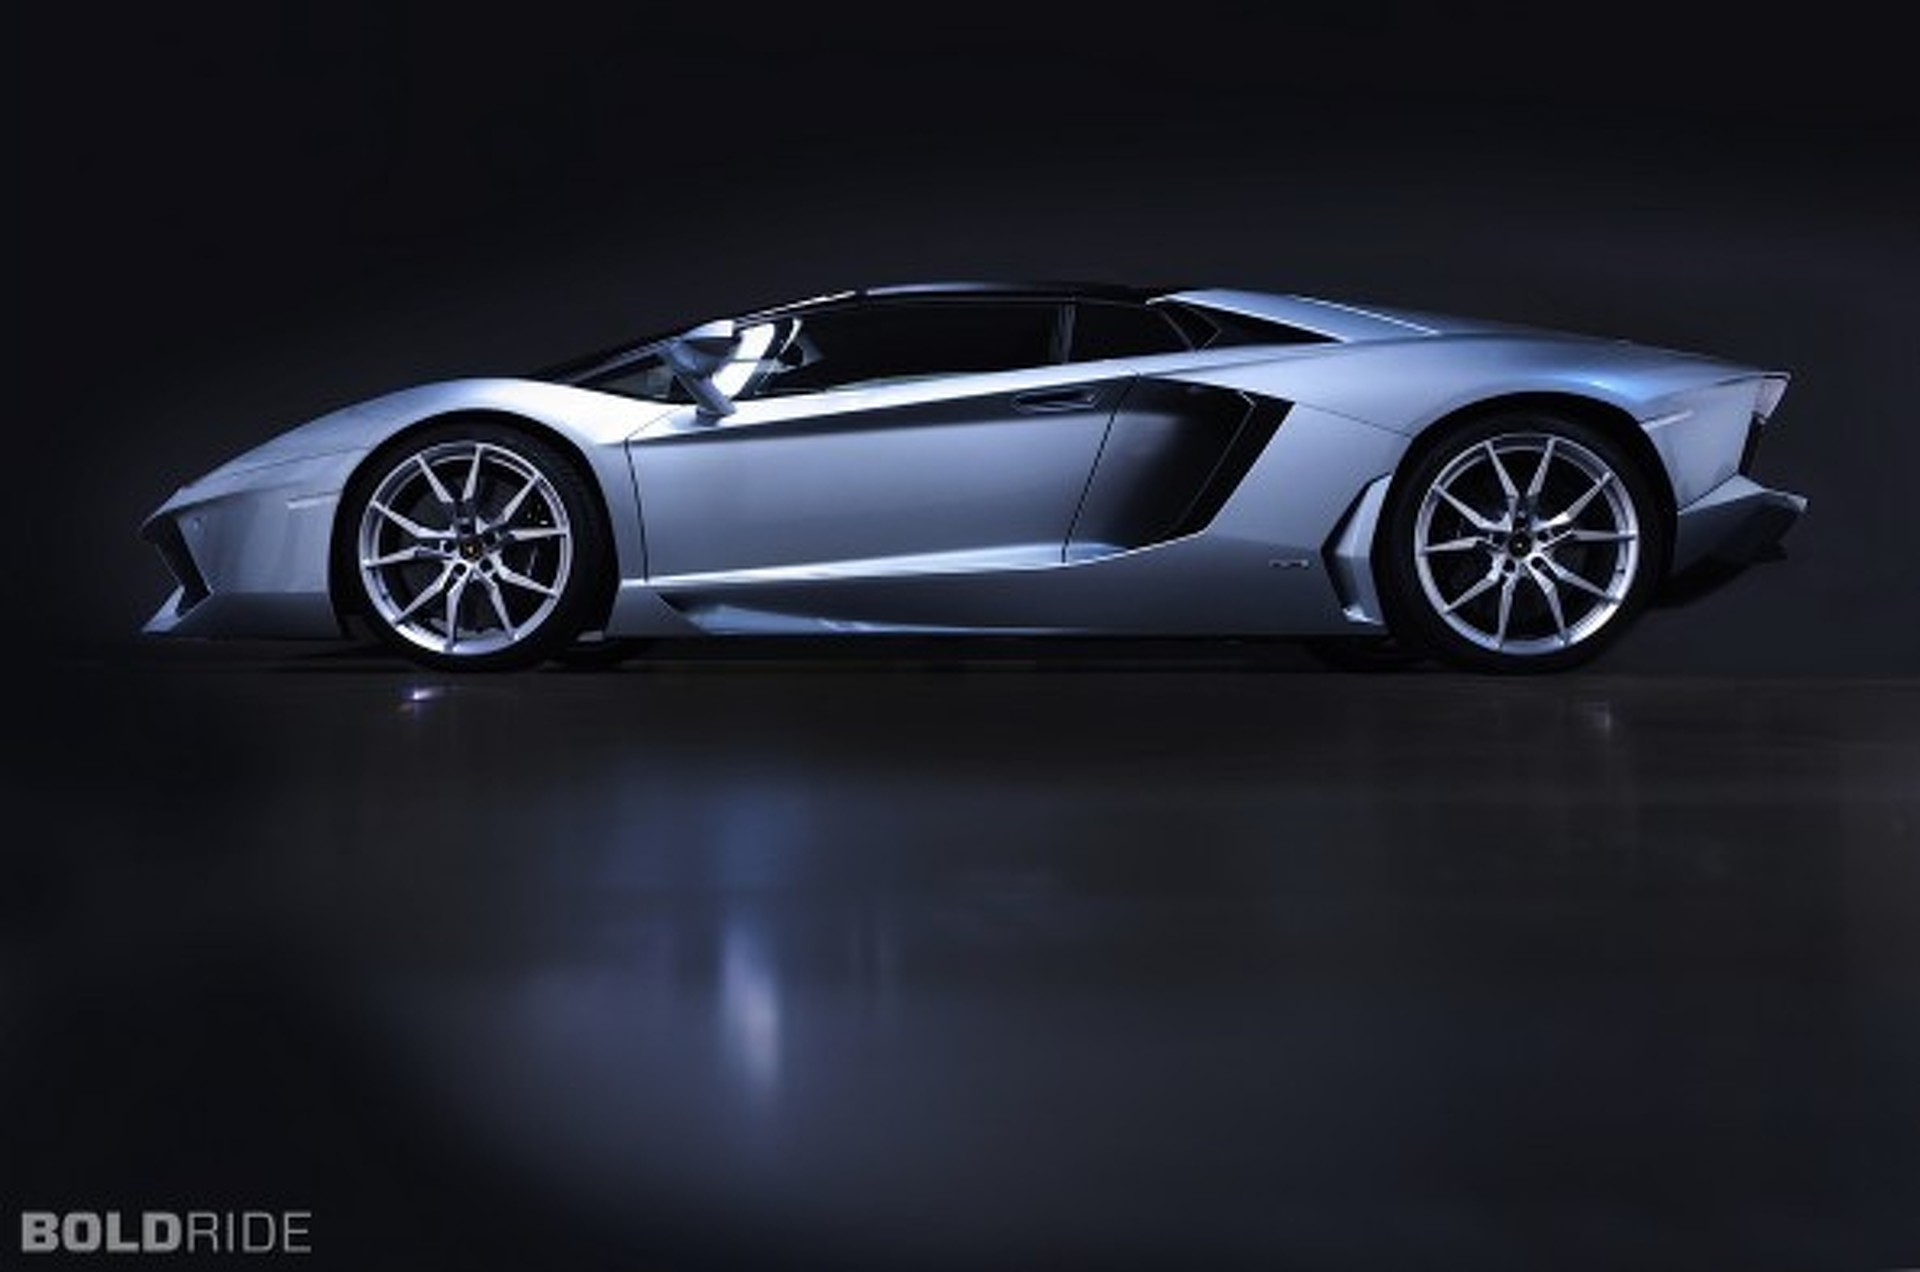 20 Best Lamborghini Wallpapers